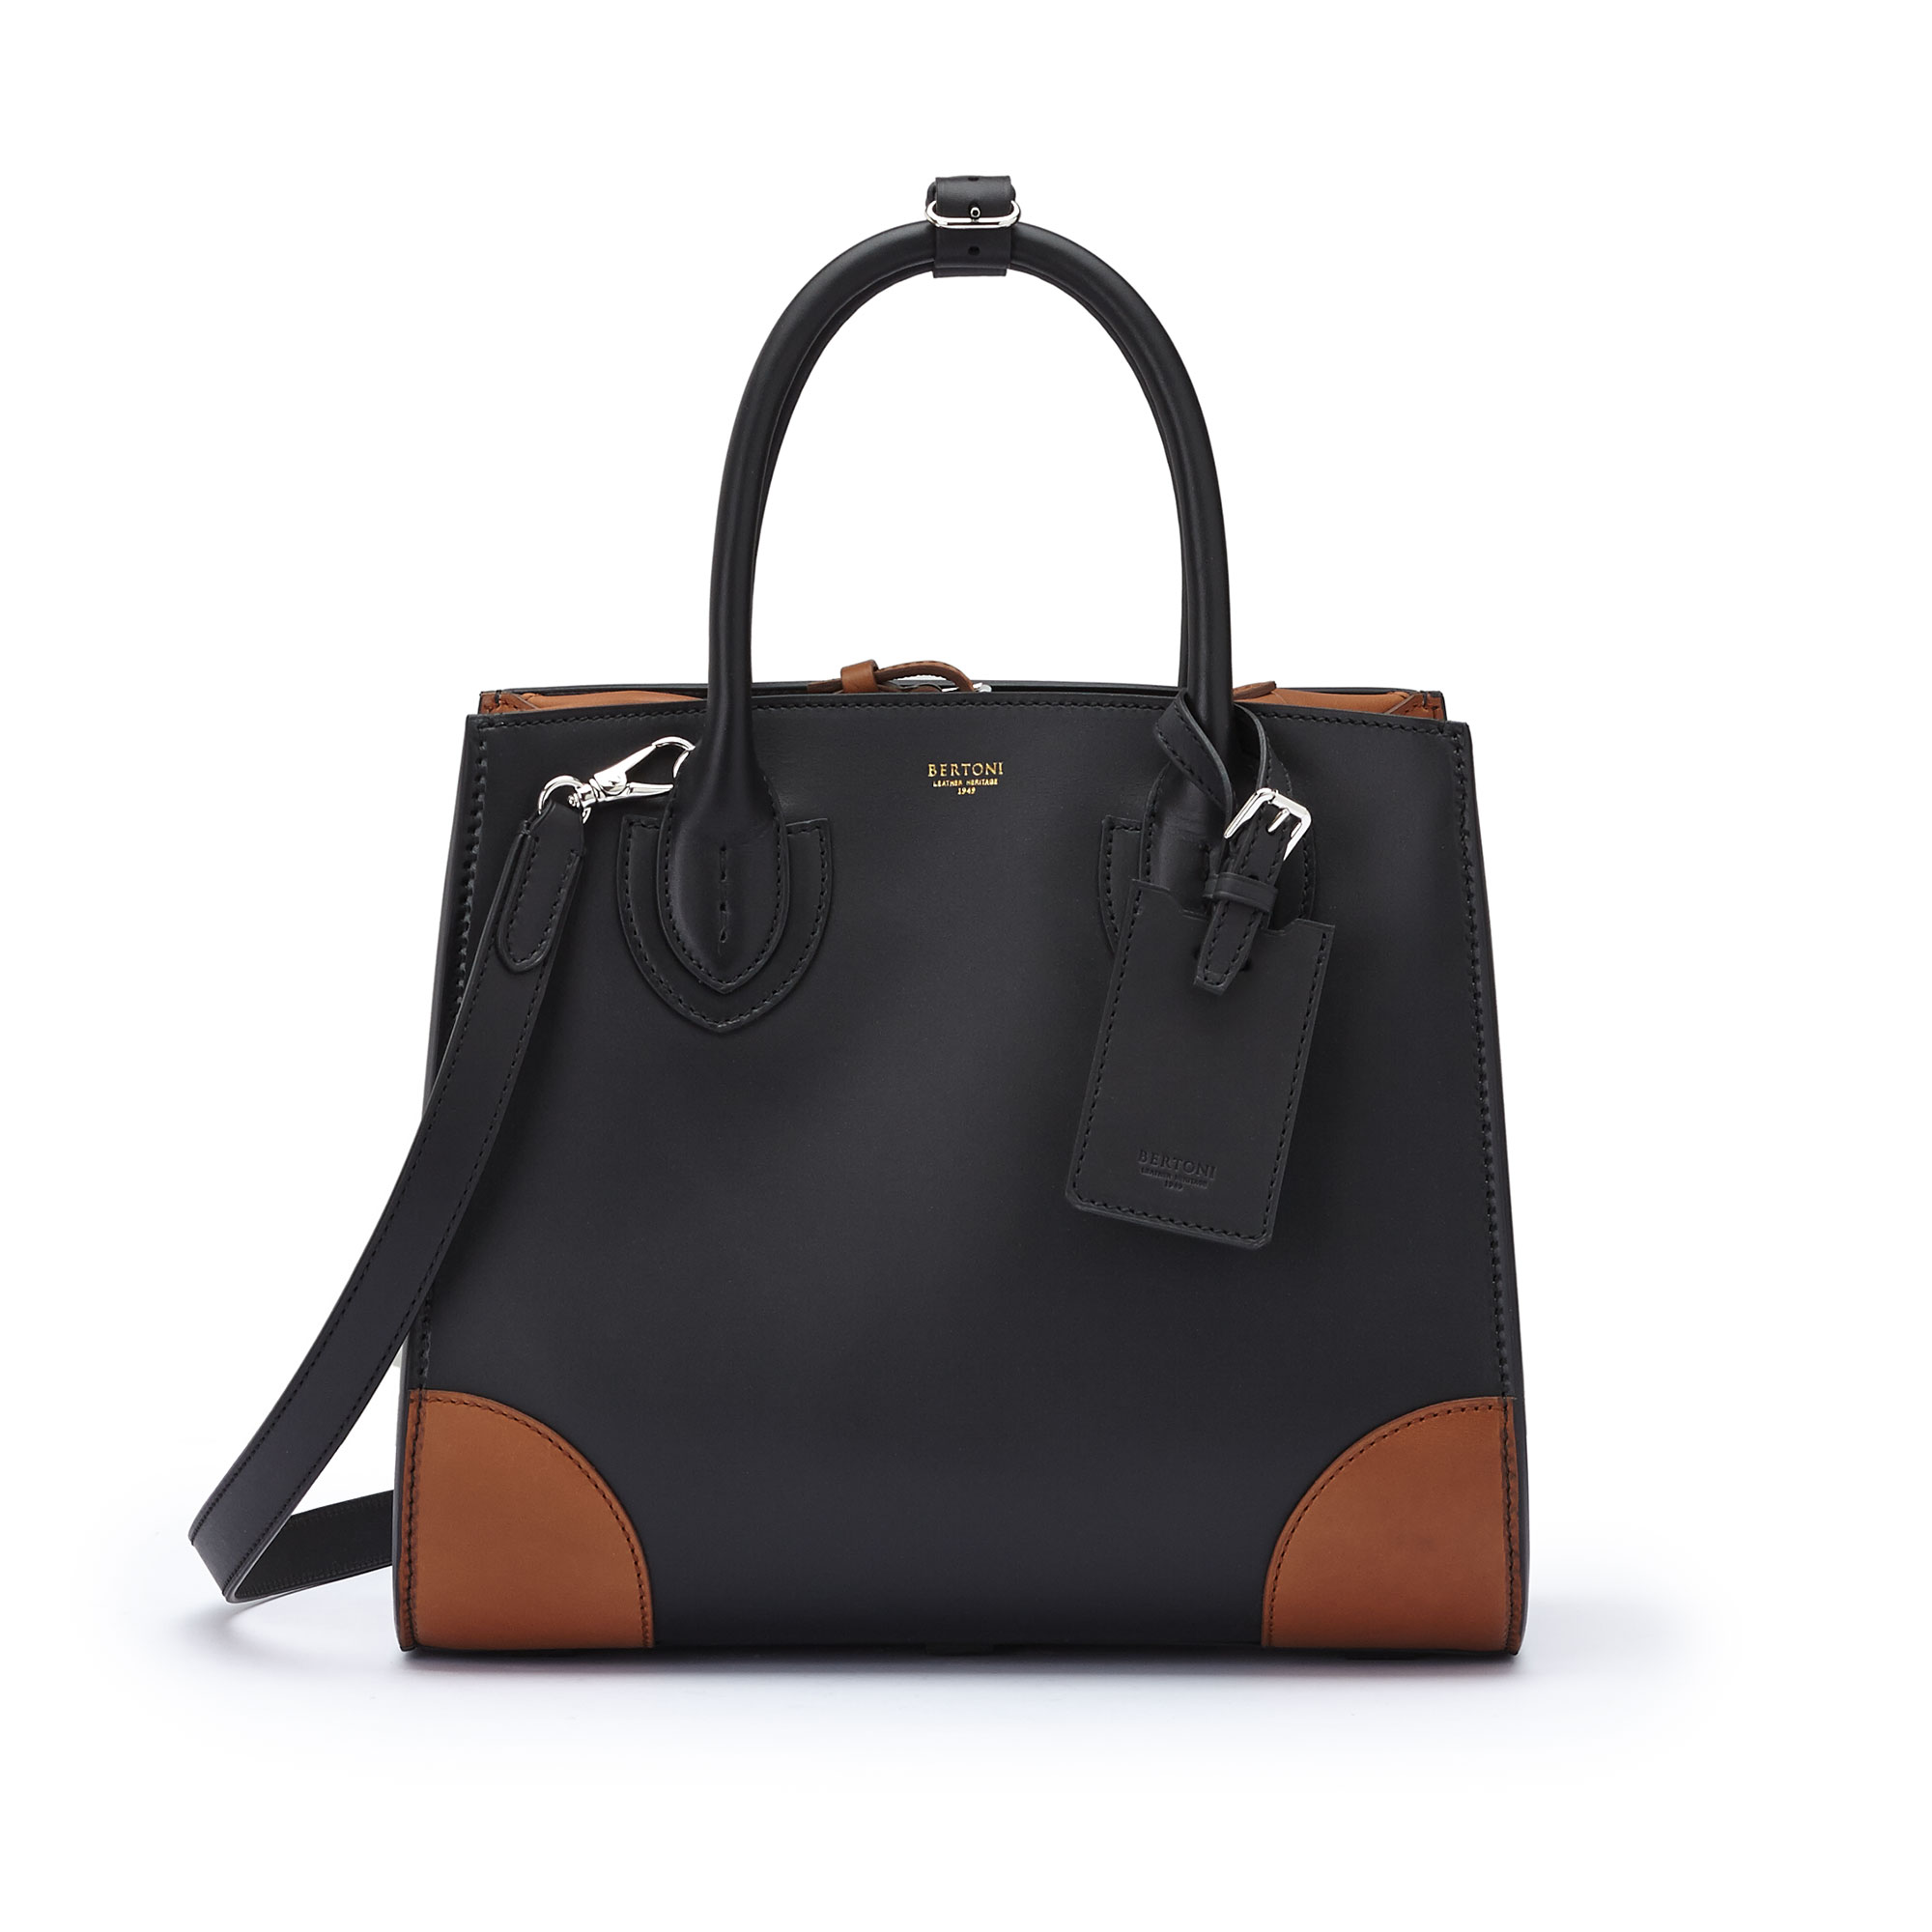 The black terrabruciata french calf Darcy large bag by Bertoni 1949 01